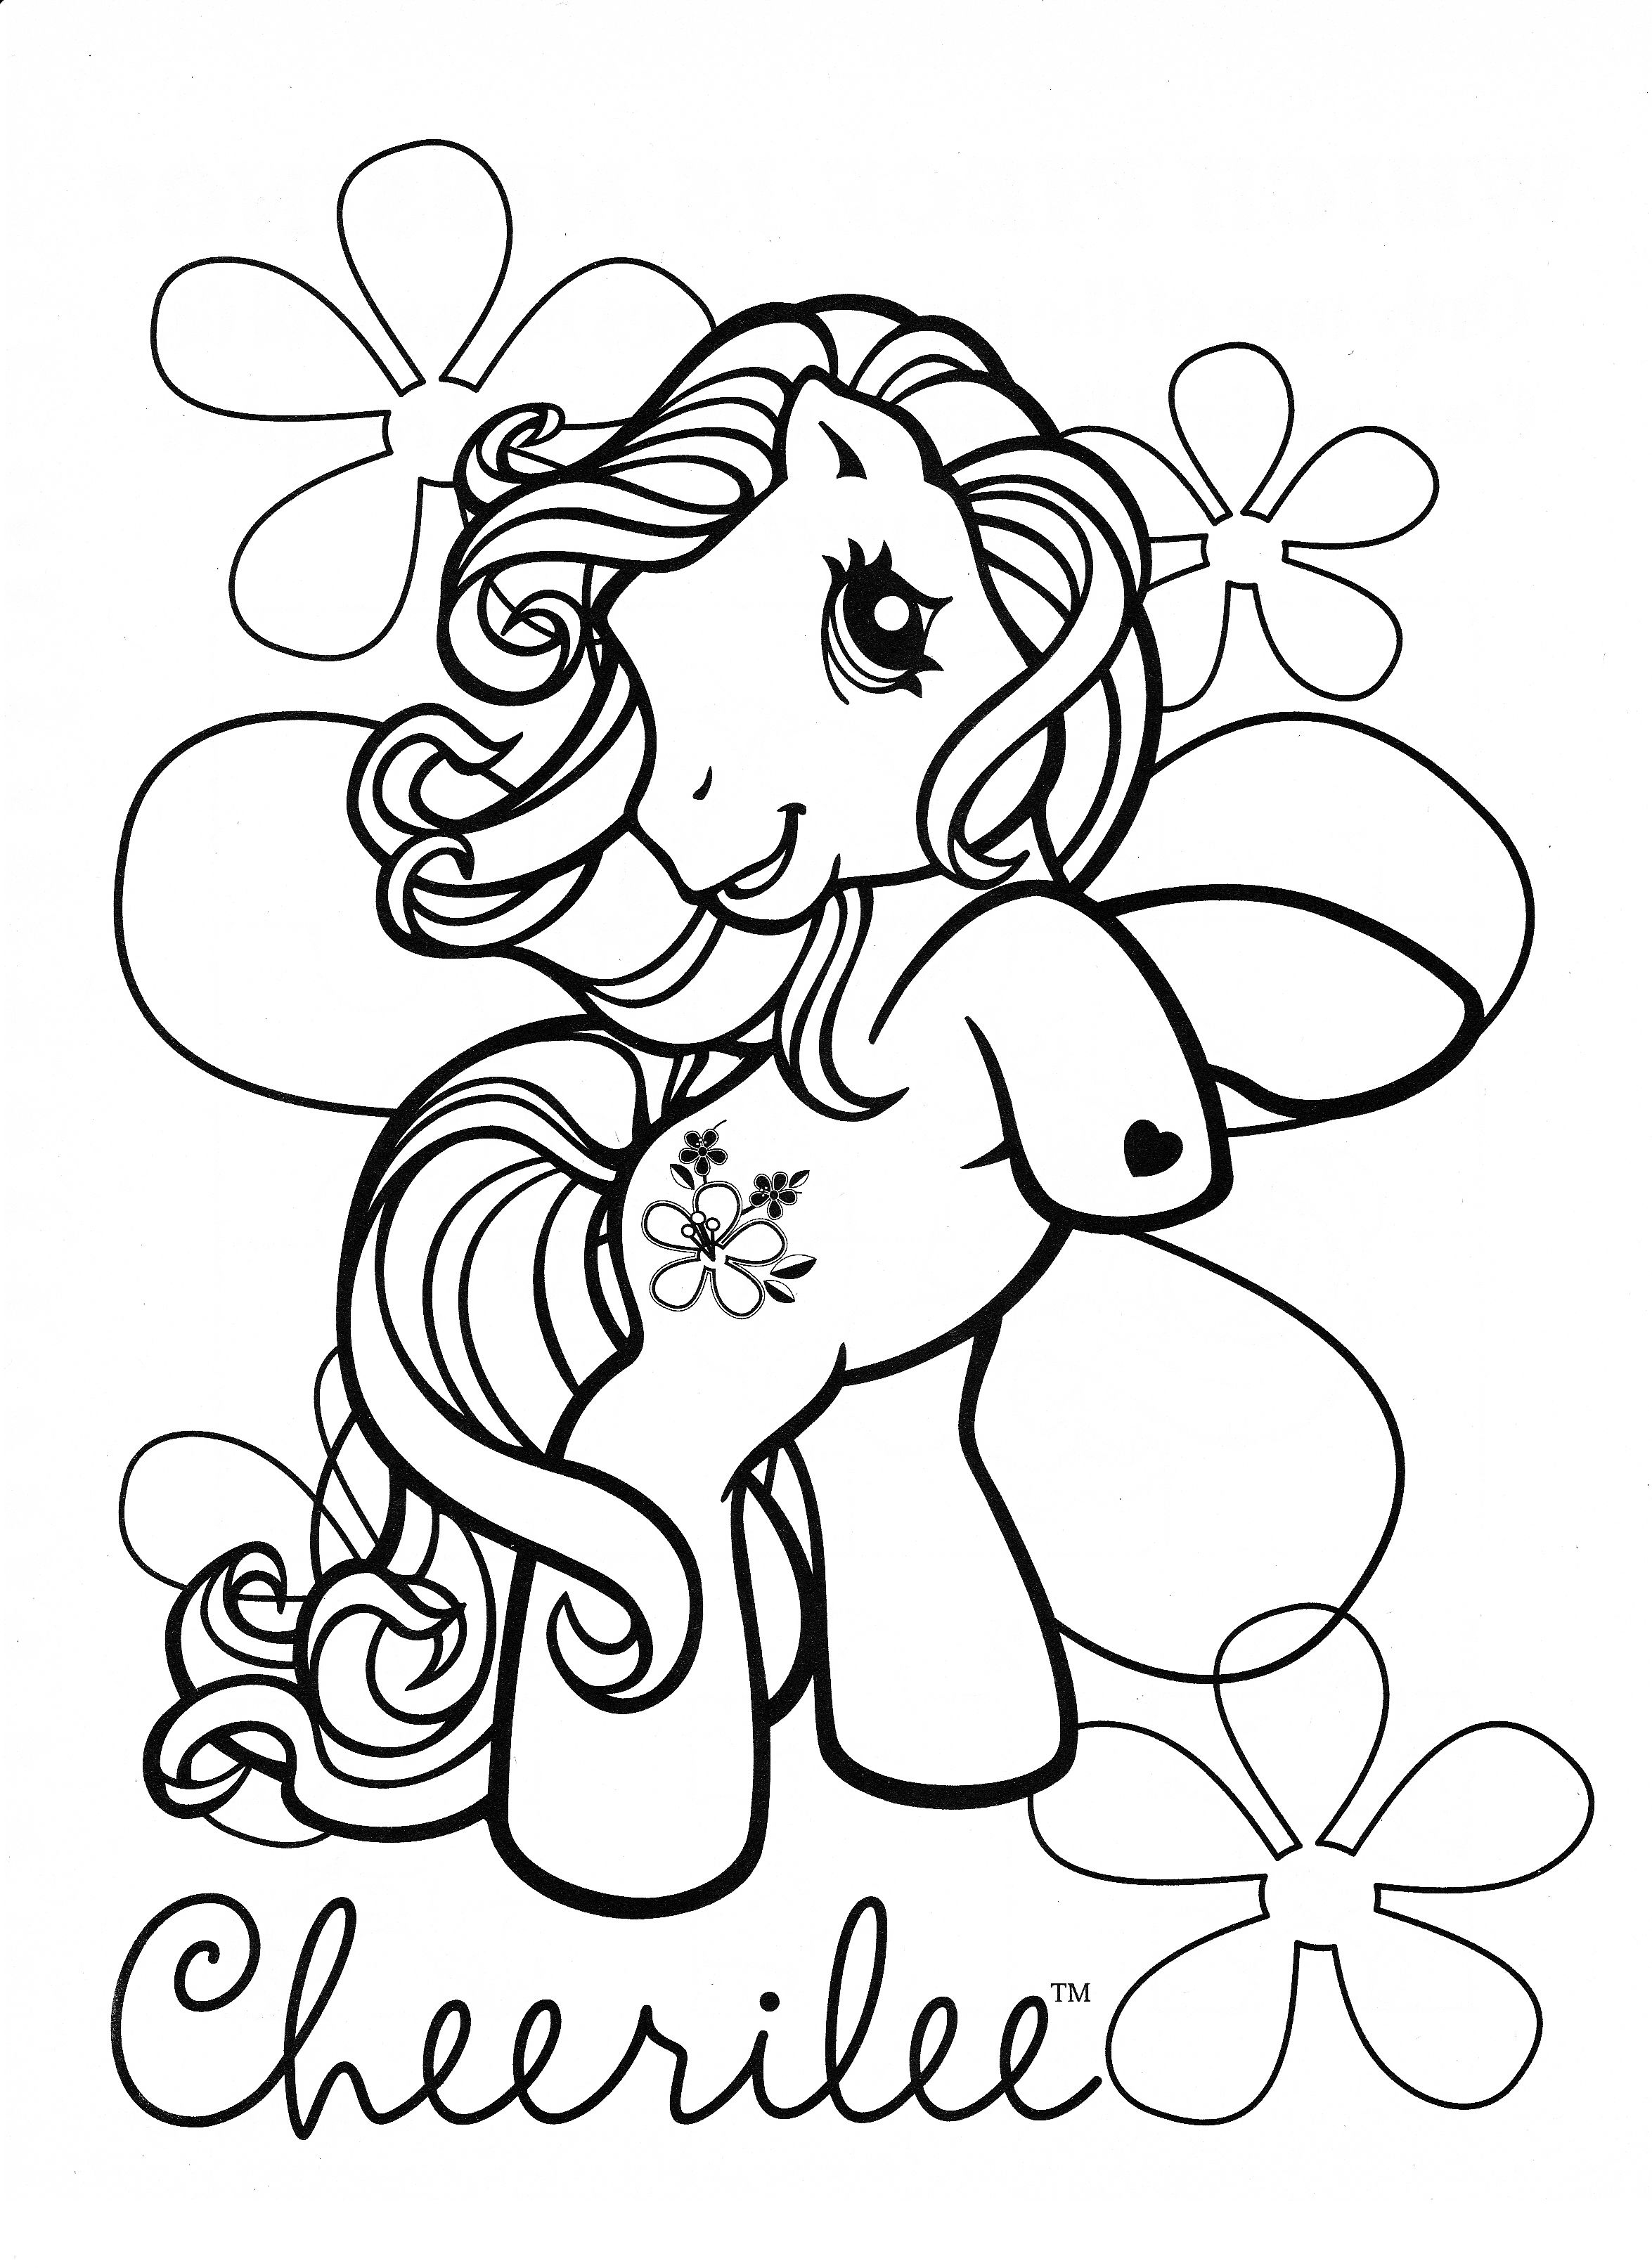 My Little Pony Coloring Page Mlp Cheerilee Cool Coloring Pages Coloring Pages My Little Pony Coloring